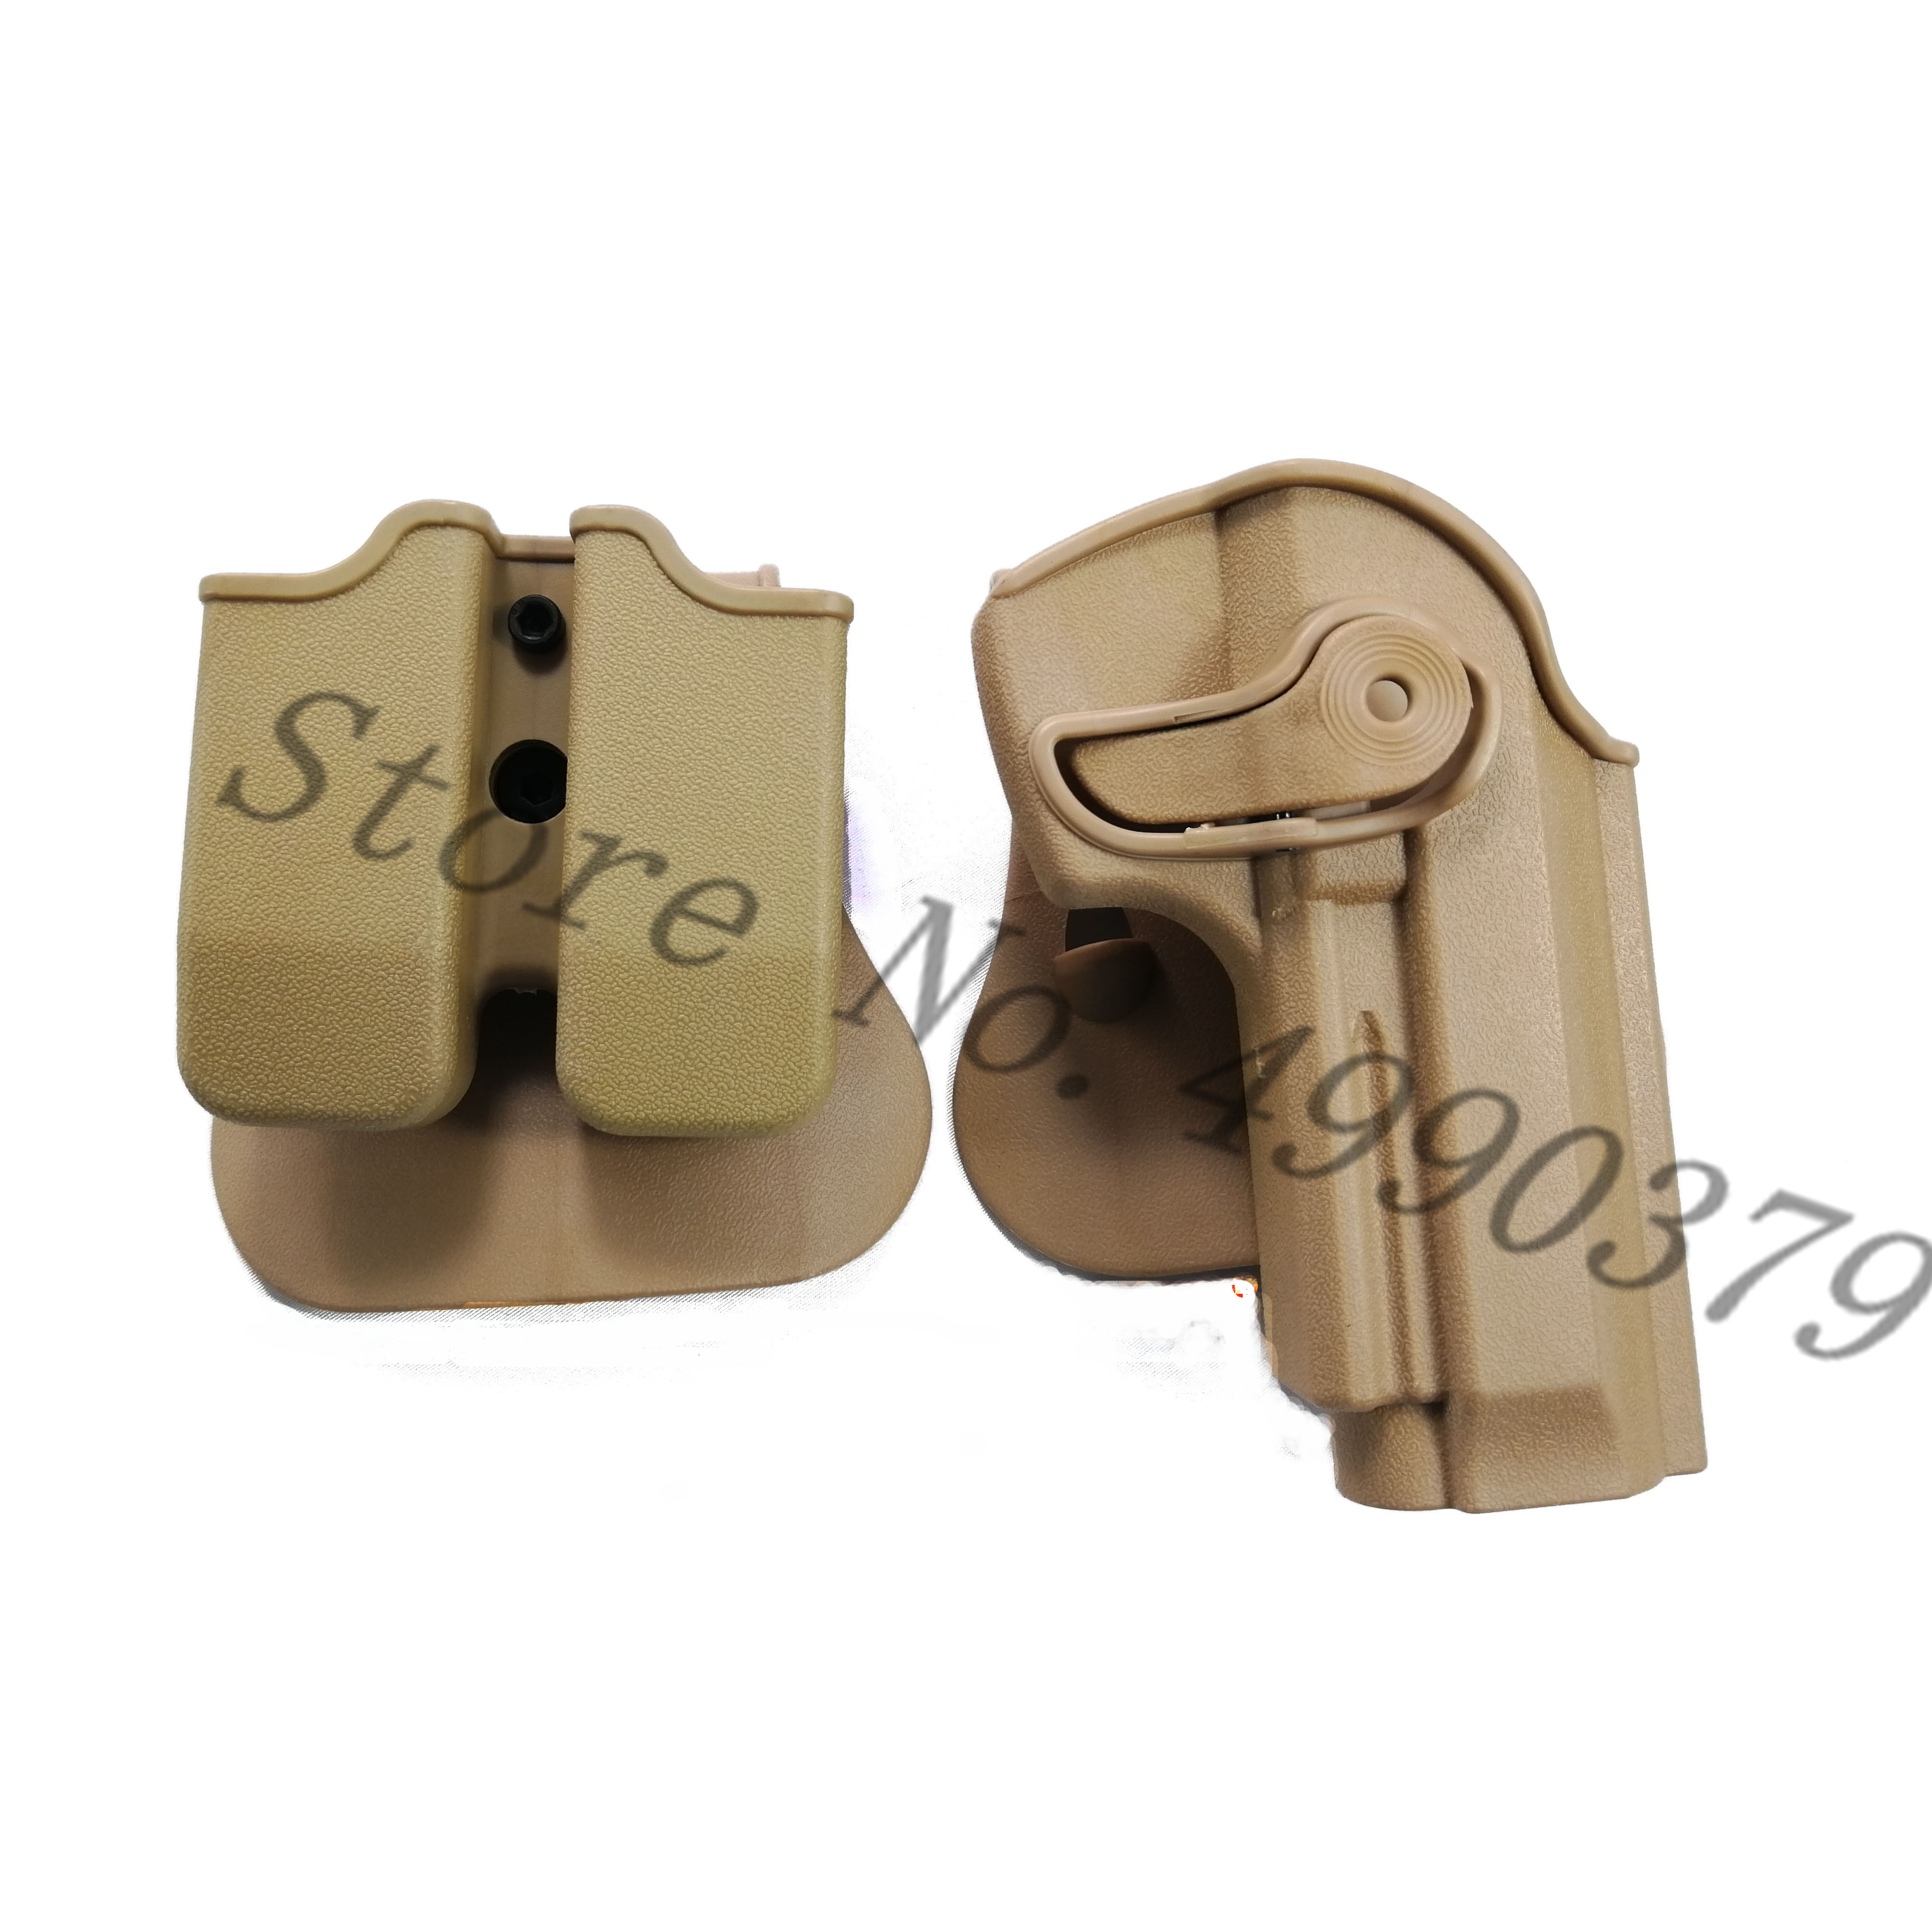 Image 5 - M9 Holster Tactical IMI Right Hand BERETTA M92 Holster Paddle Pistol Gun Holster Gun Airsoft Case Hunting Accessories-in Holsters from Sports & Entertainment